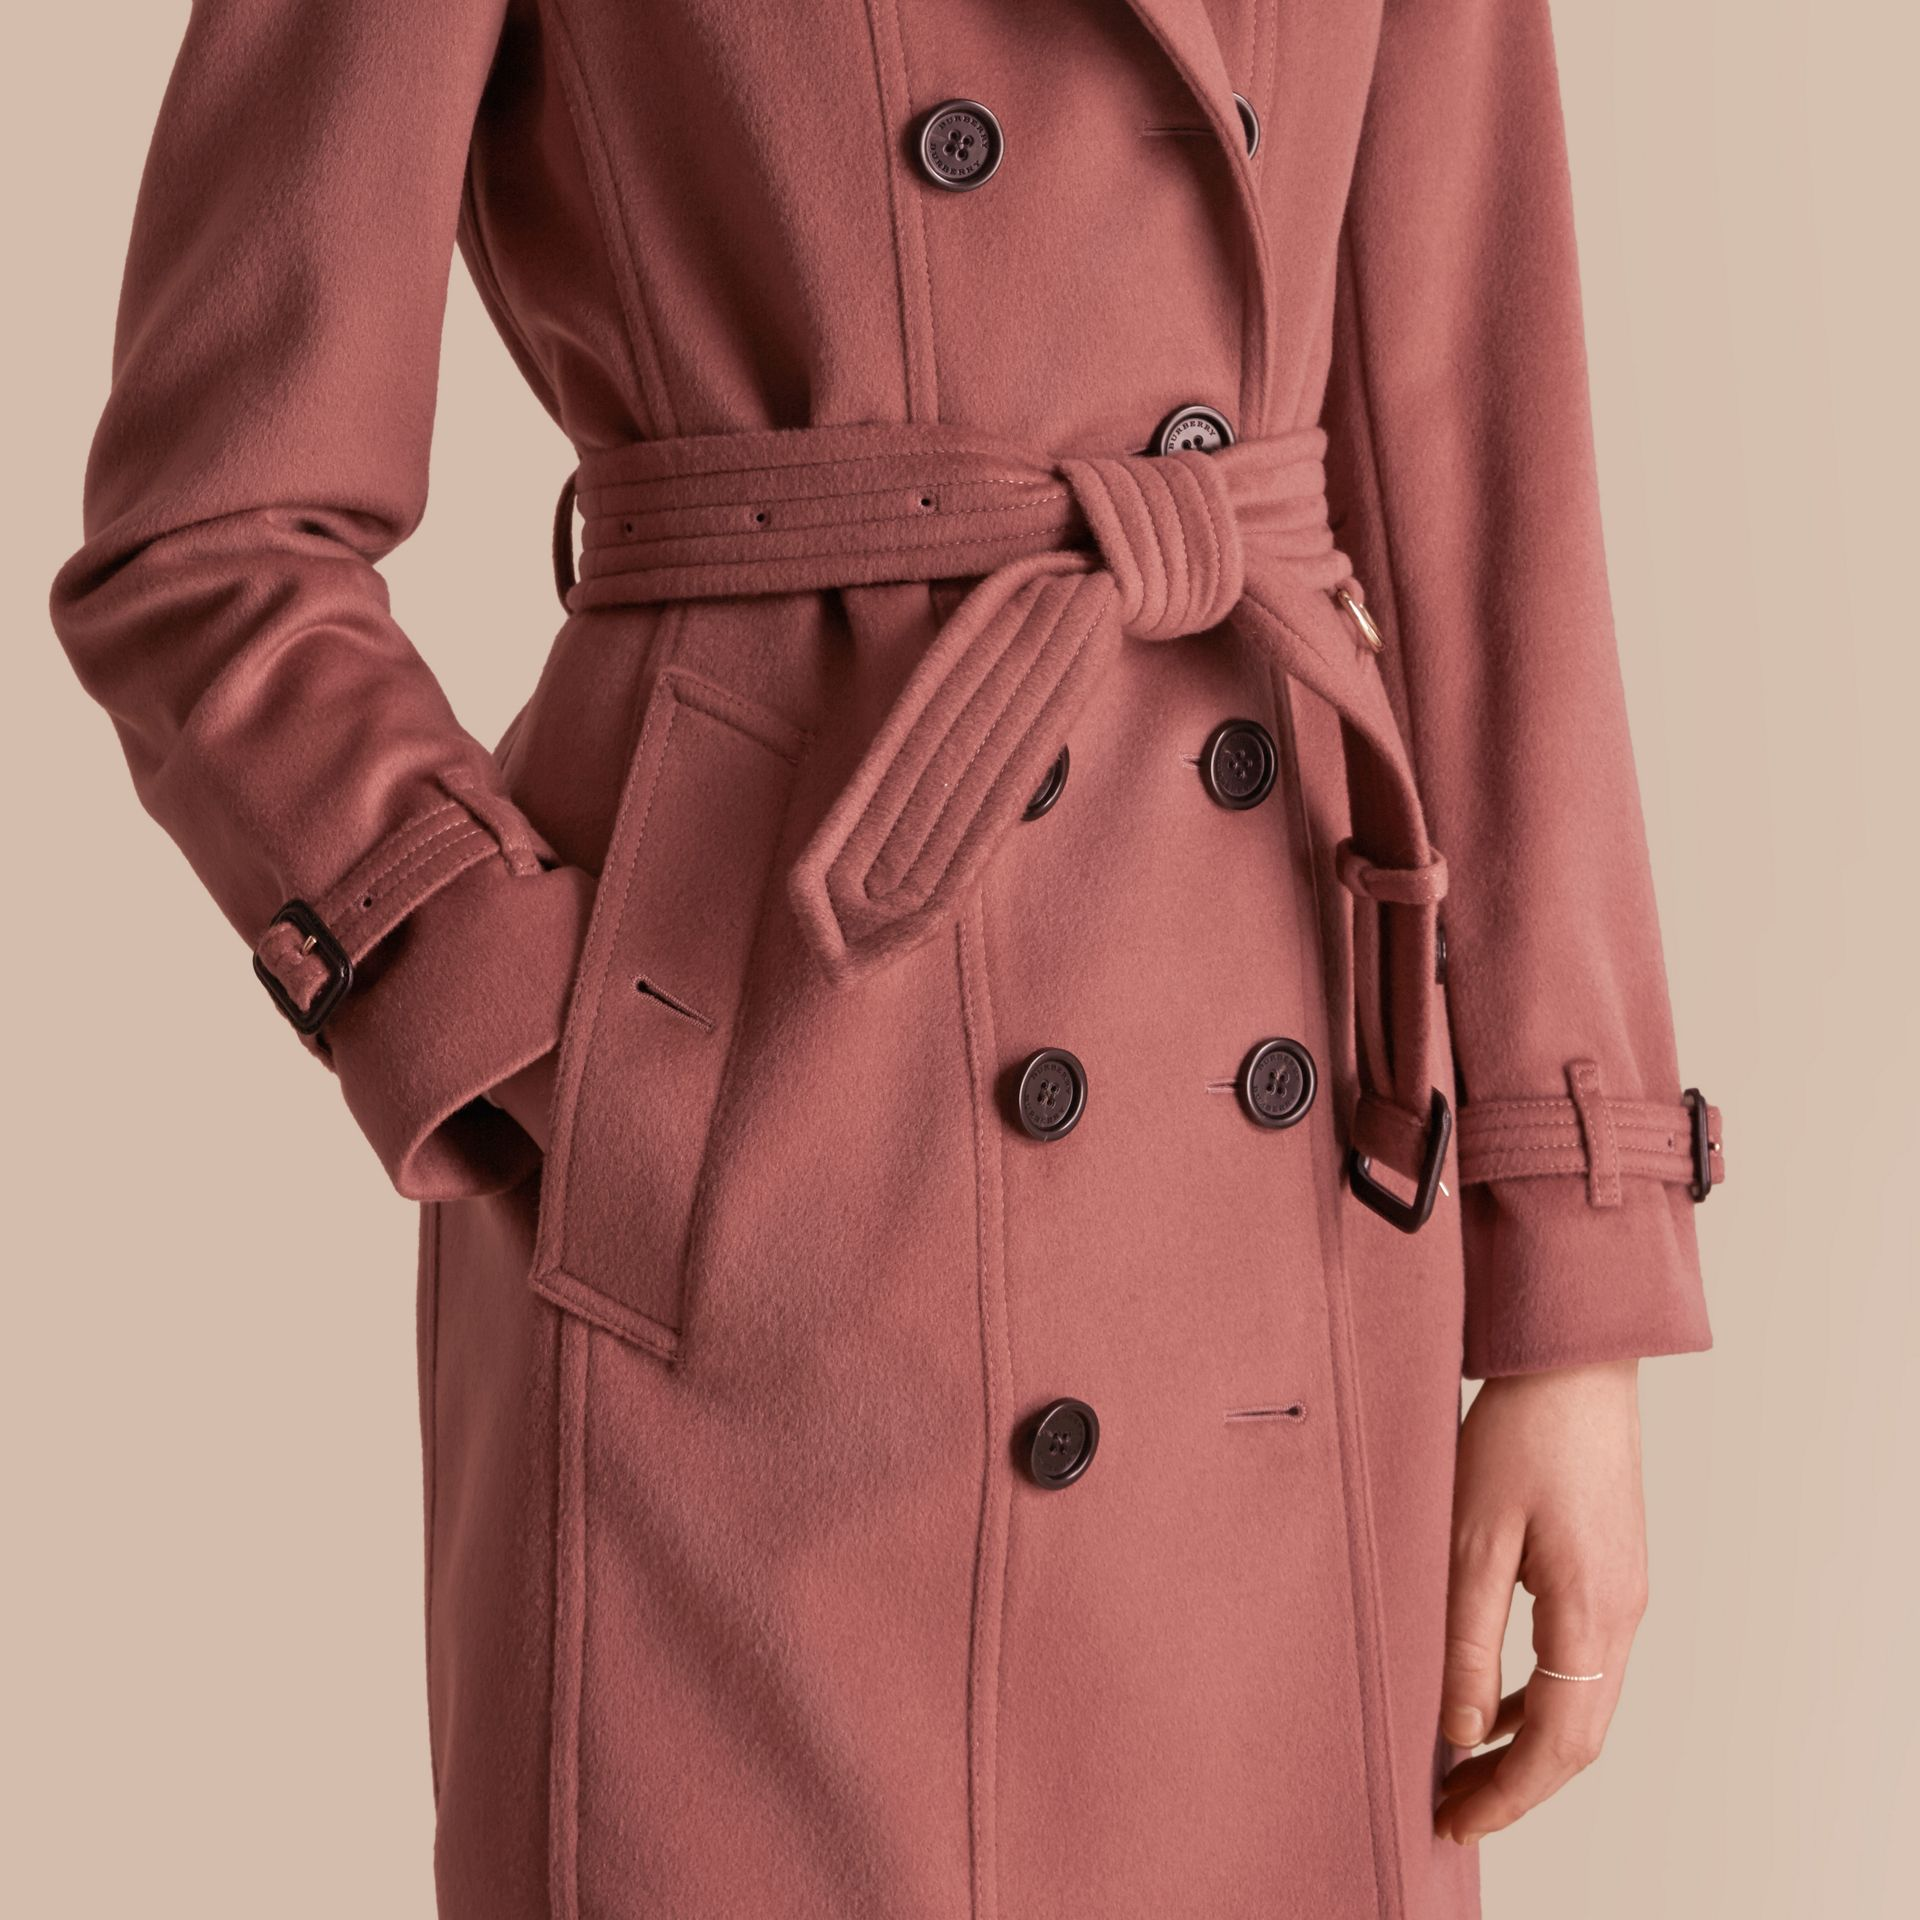 Antique rose Wool Cashmere Trench Coat with Detachable Fur Collar - gallery image 6